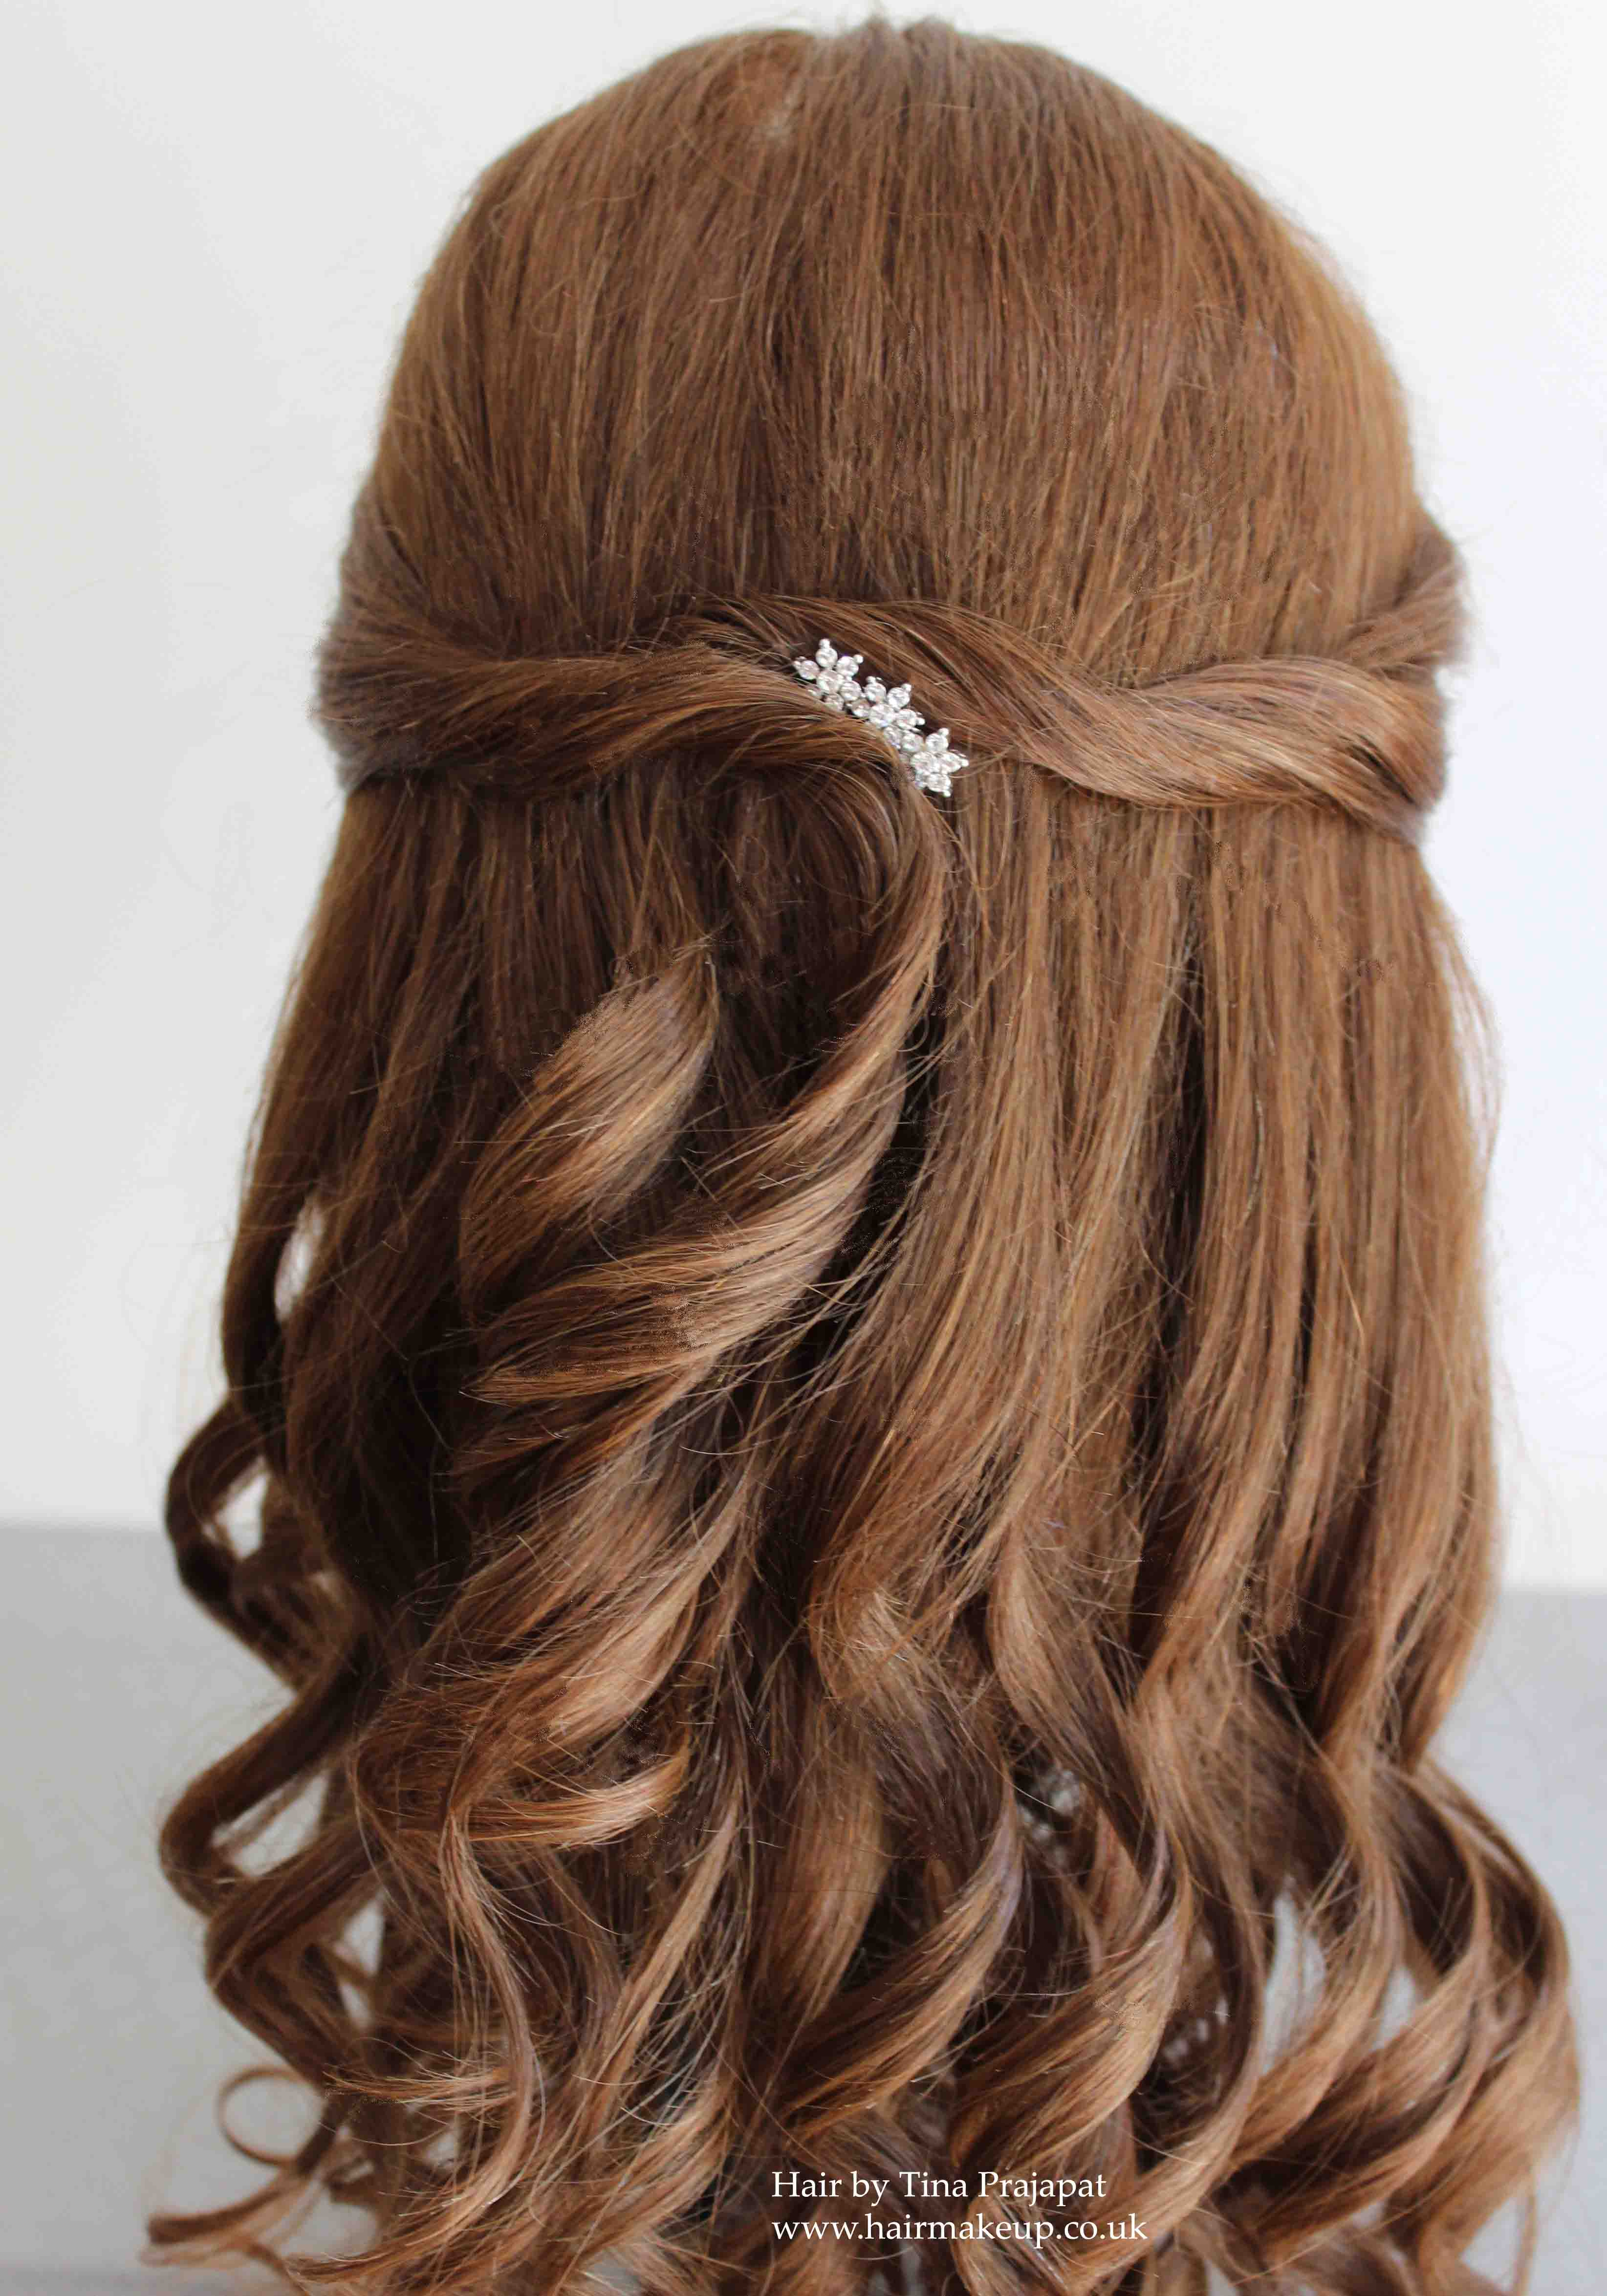 Simple Hairstyle For Occasion : Half up down hair ideas for brides and special